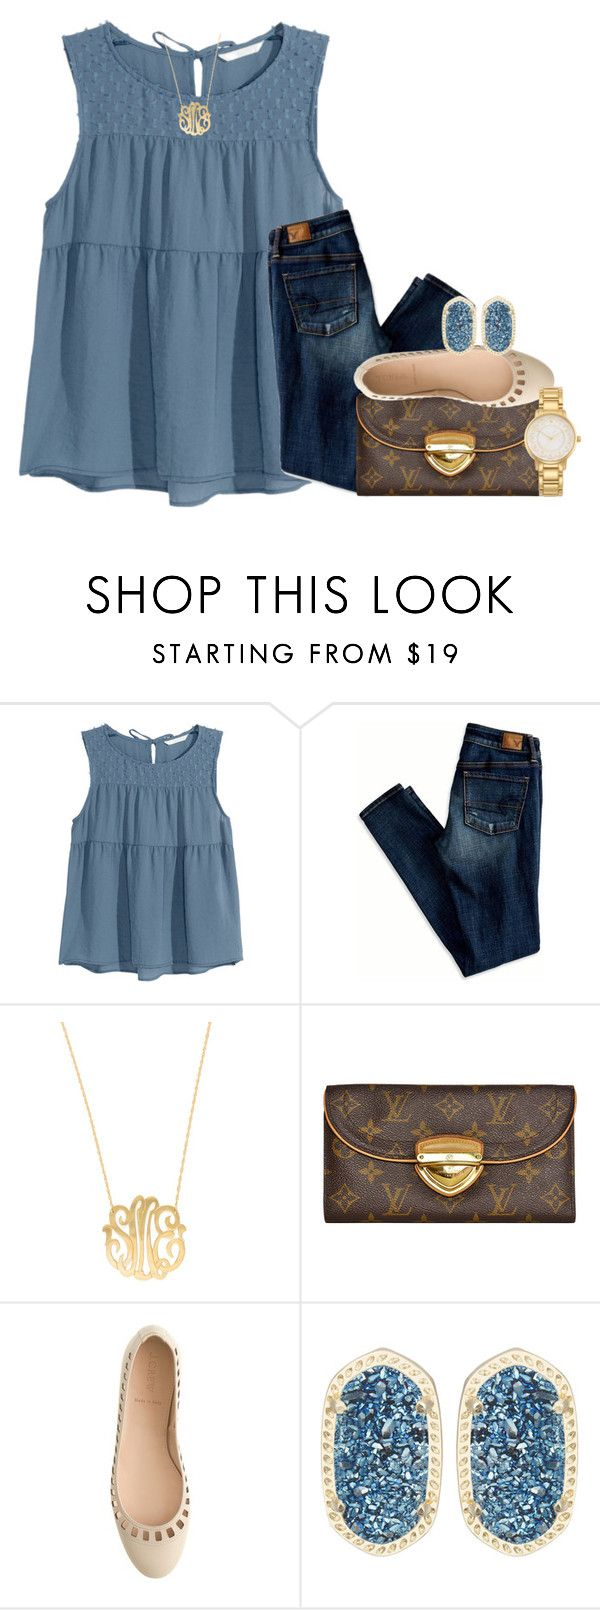 """""""got 3 inches off my hair the other day!!!"""" by thefashionbyem ❤ liked on Polyvore featuring H&M, American Eagle Outfitters, Moon and Lola, Louis Vuitton, J.Crew, Kendra Scott, Kate Spade, women's clothing, women and female"""